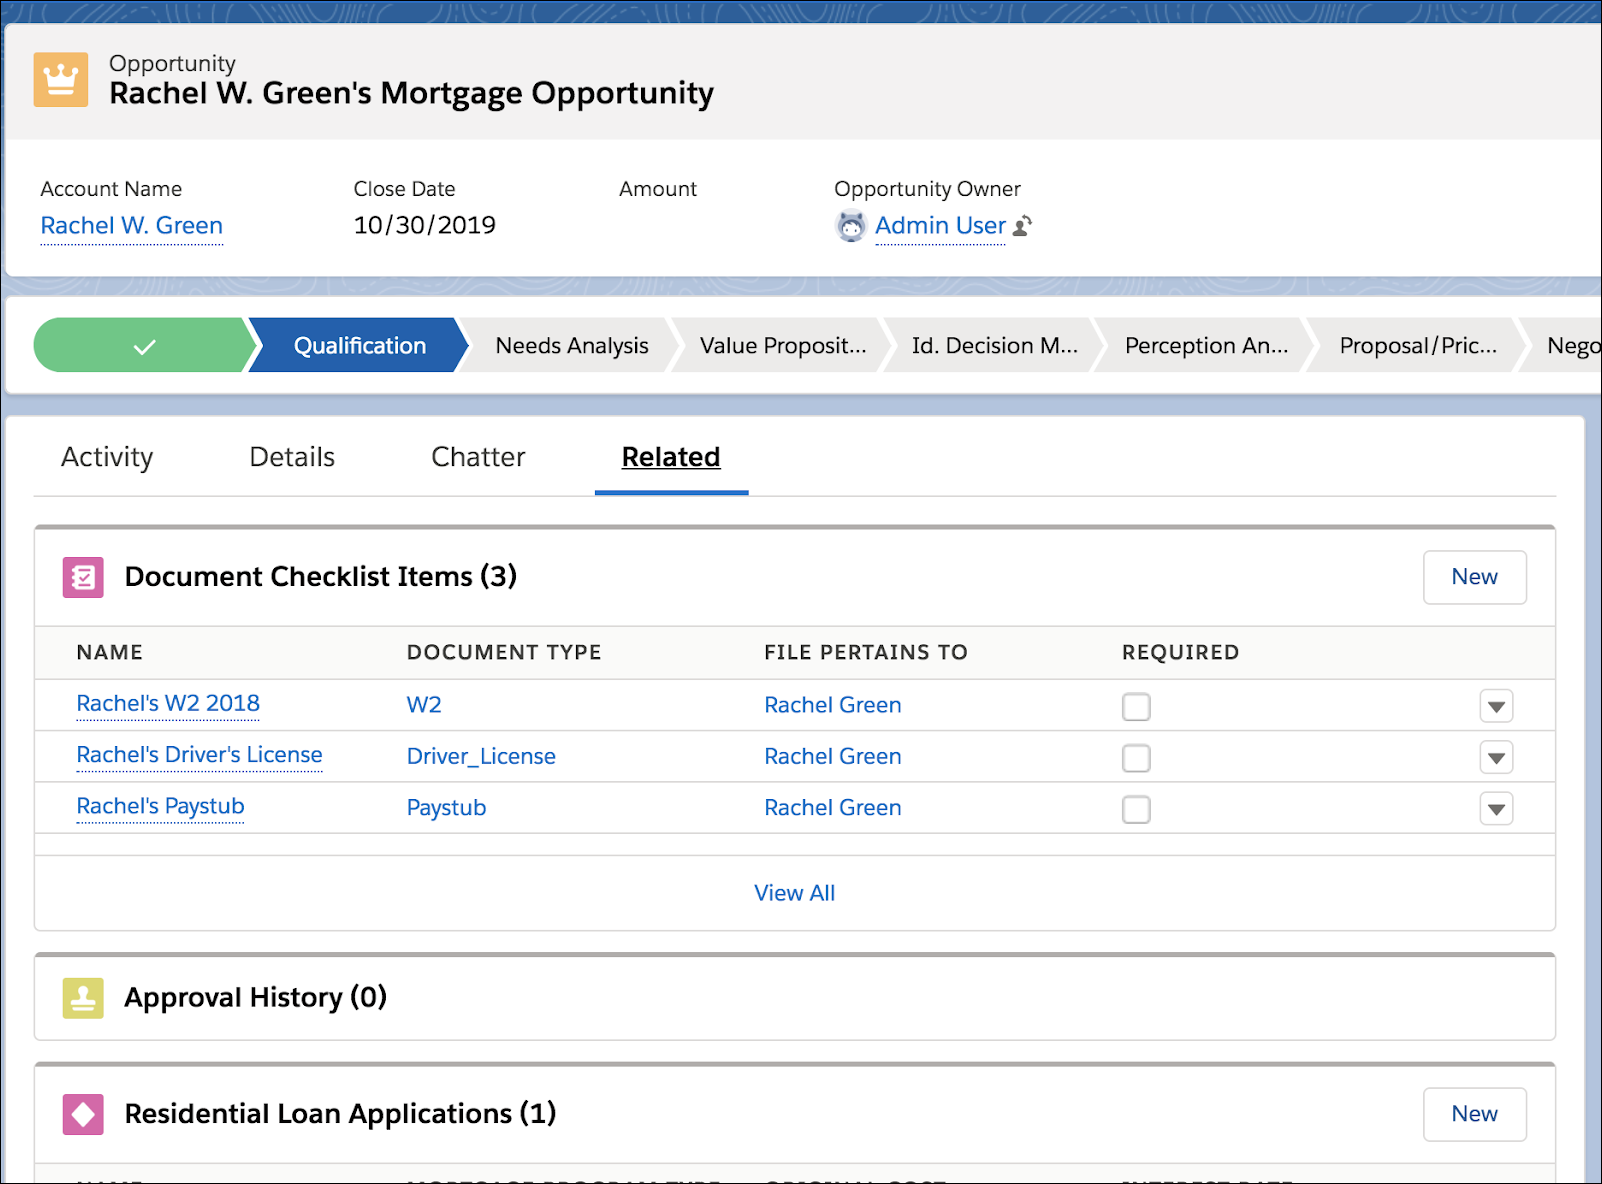 Document checklist items for Richard Bennet within Financial Services Cloud.